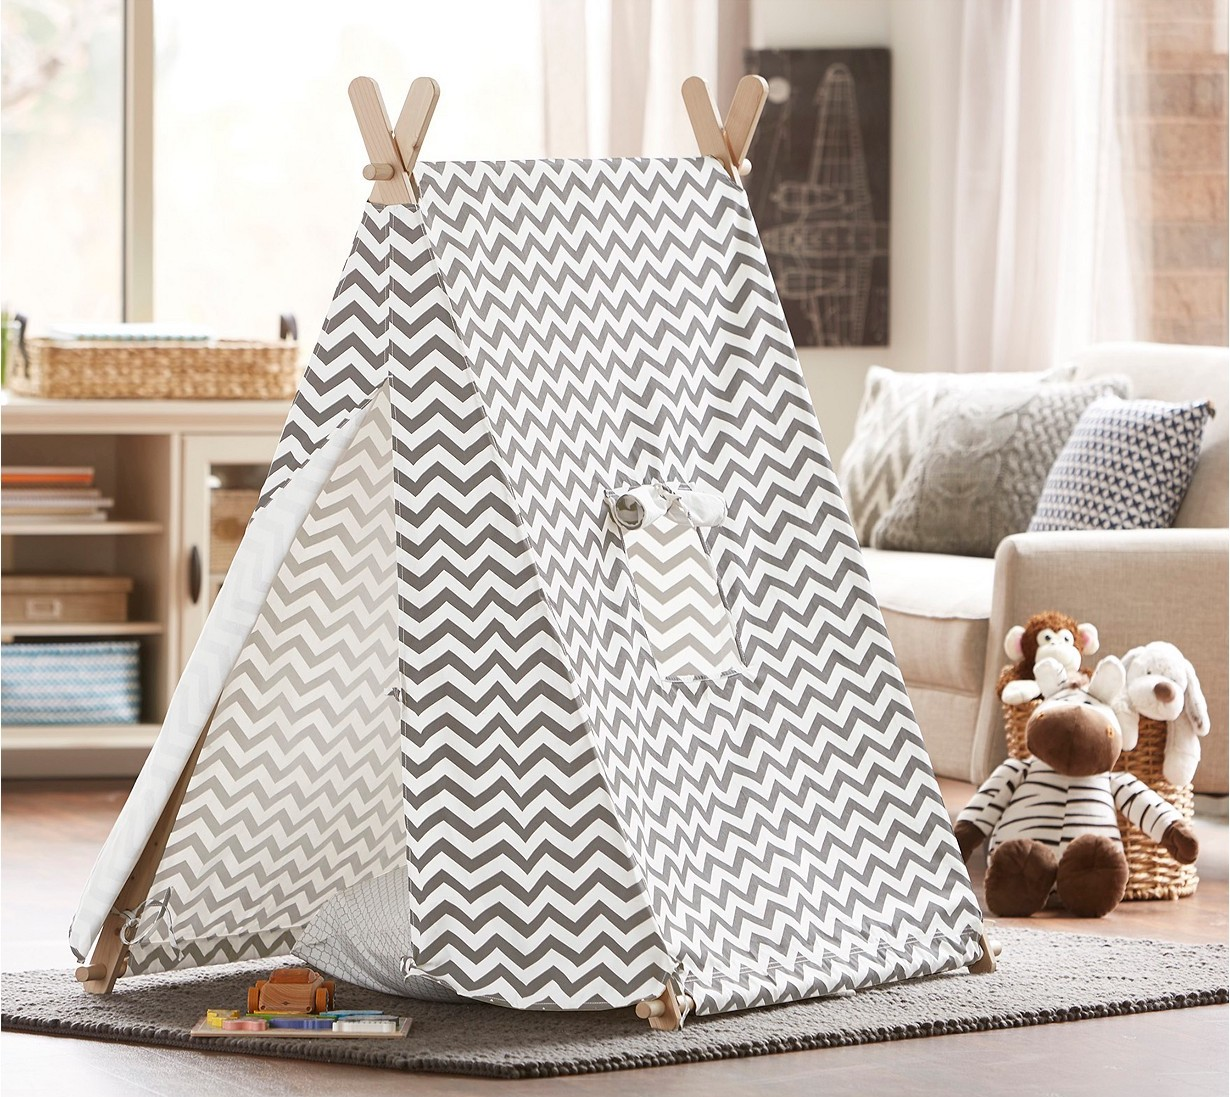 A tent designed for kids.